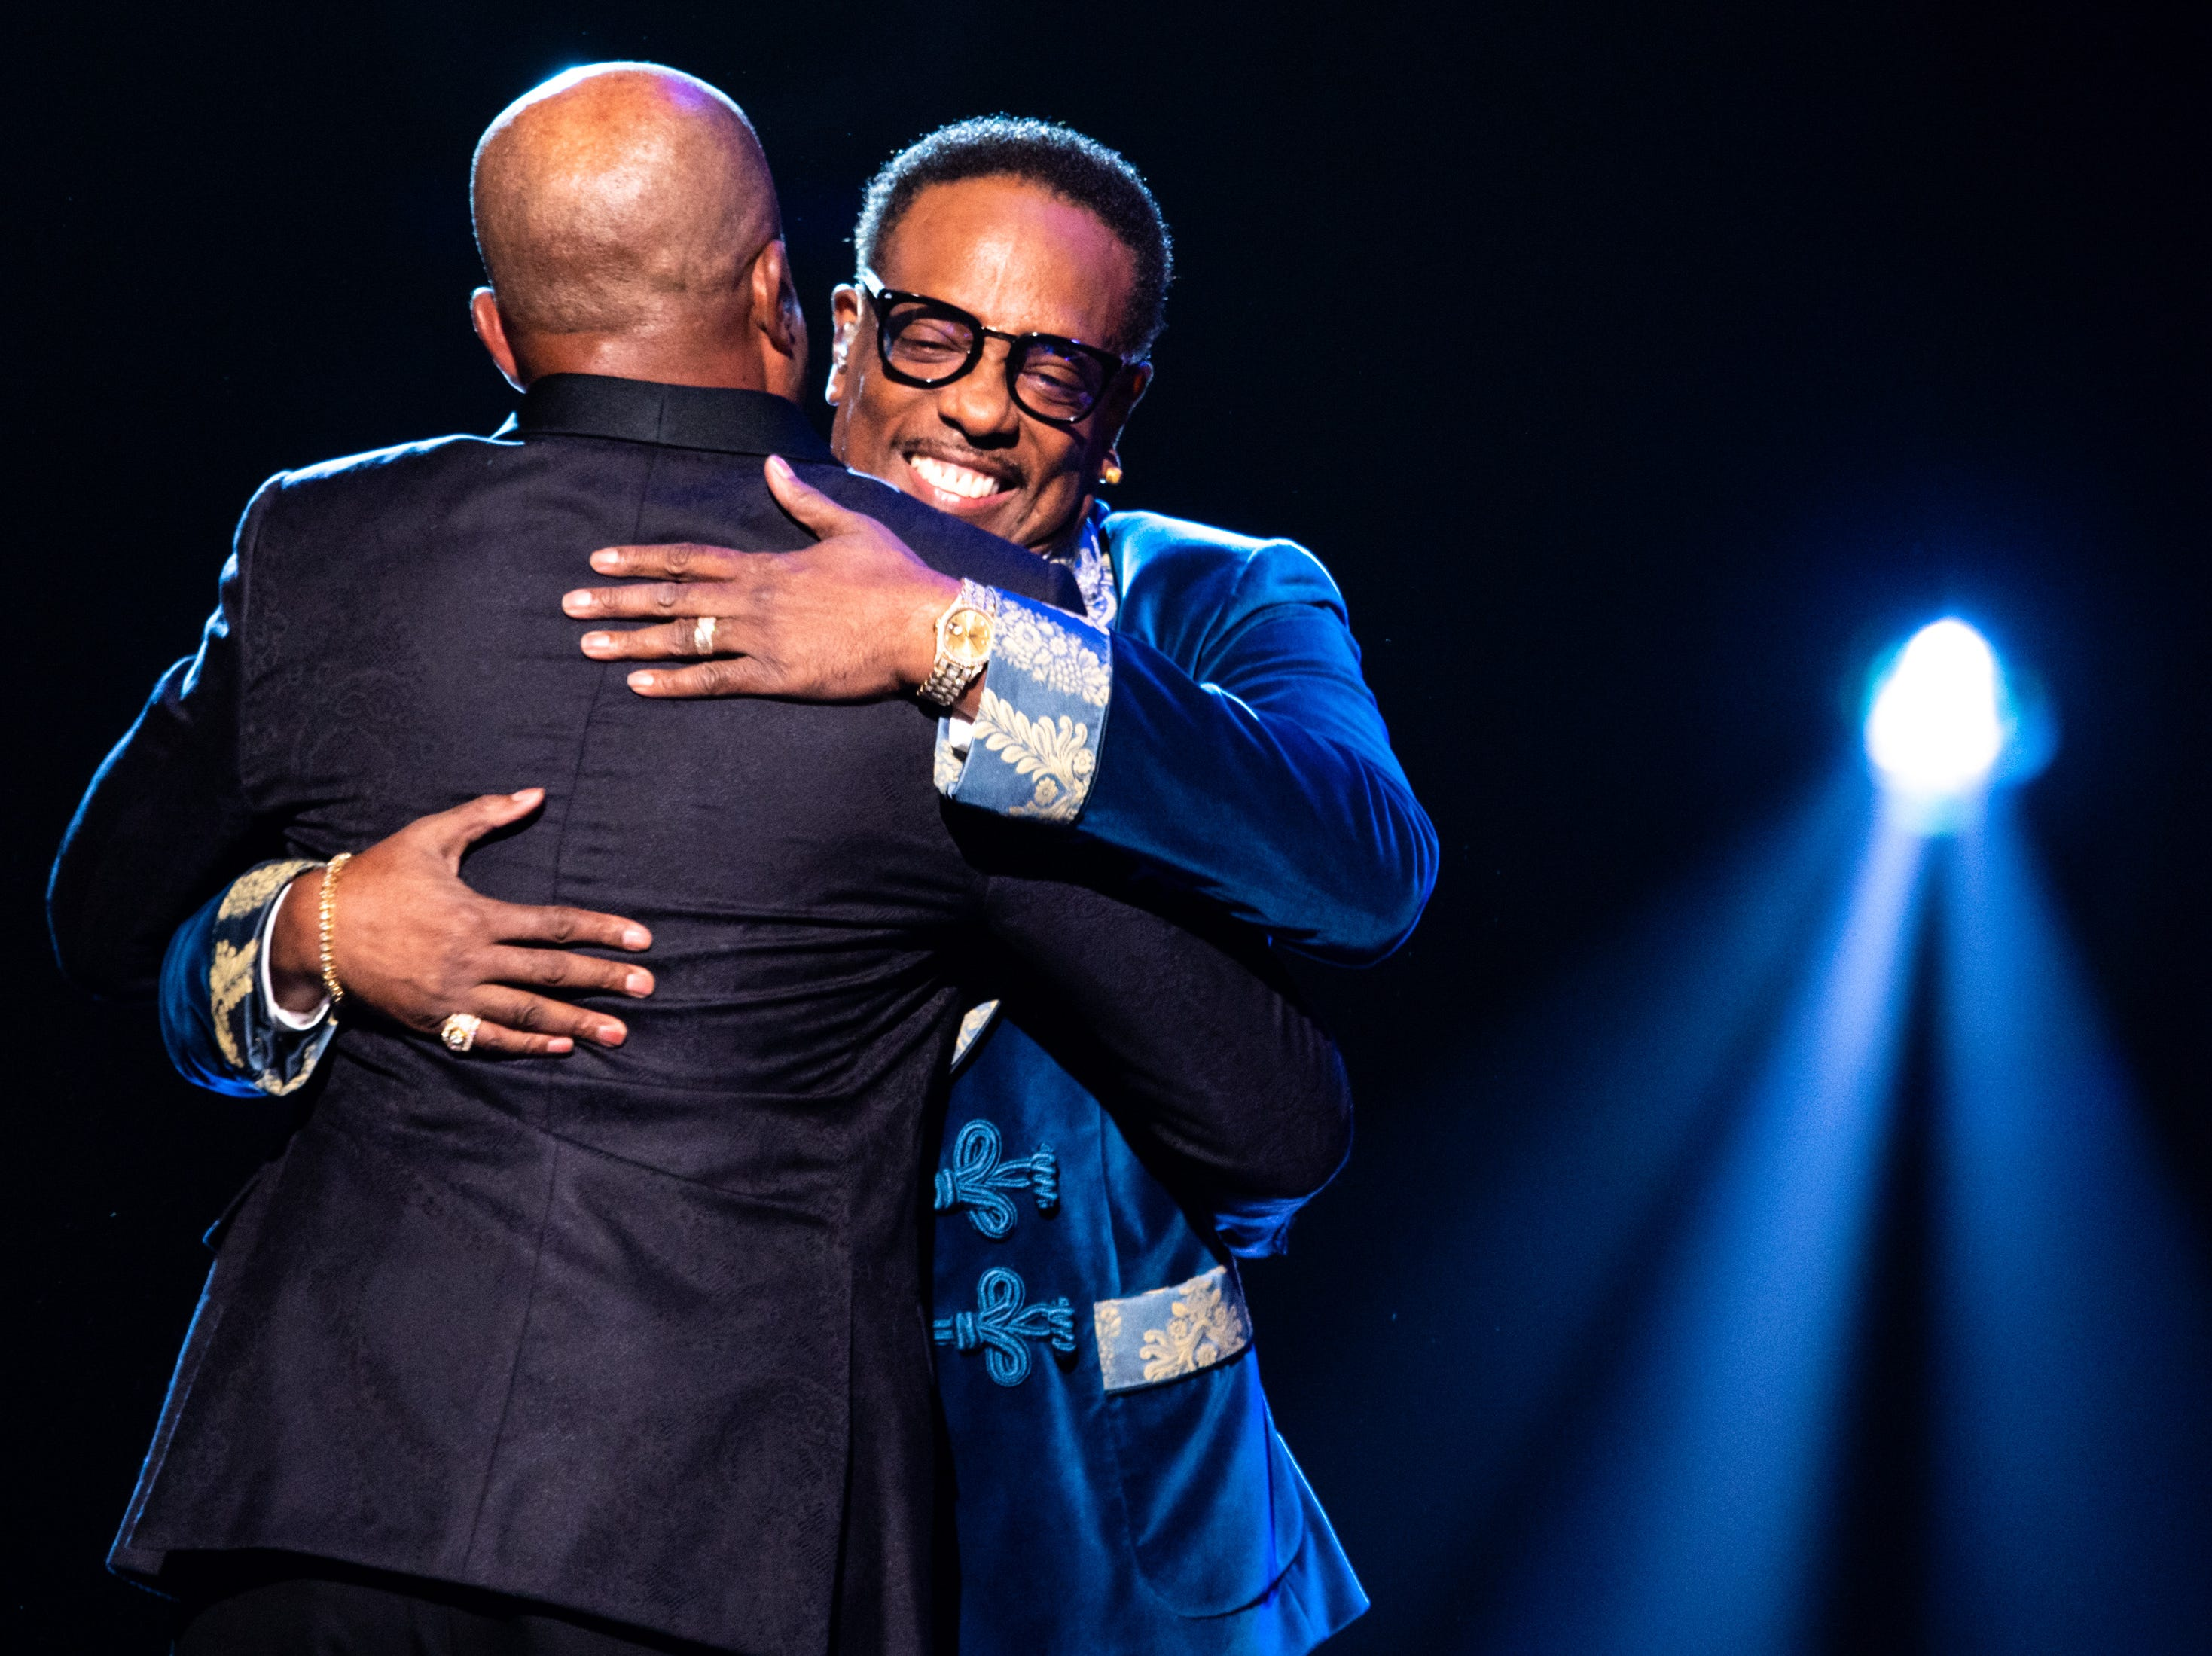 Darius Rucker, left, hugs Charlie Wilson, right, performs during the An Opry Salute to Ray Charles concert at The Grand Ole Opry in Nashville, Tenn., Monday, Oct. 8, 2018.